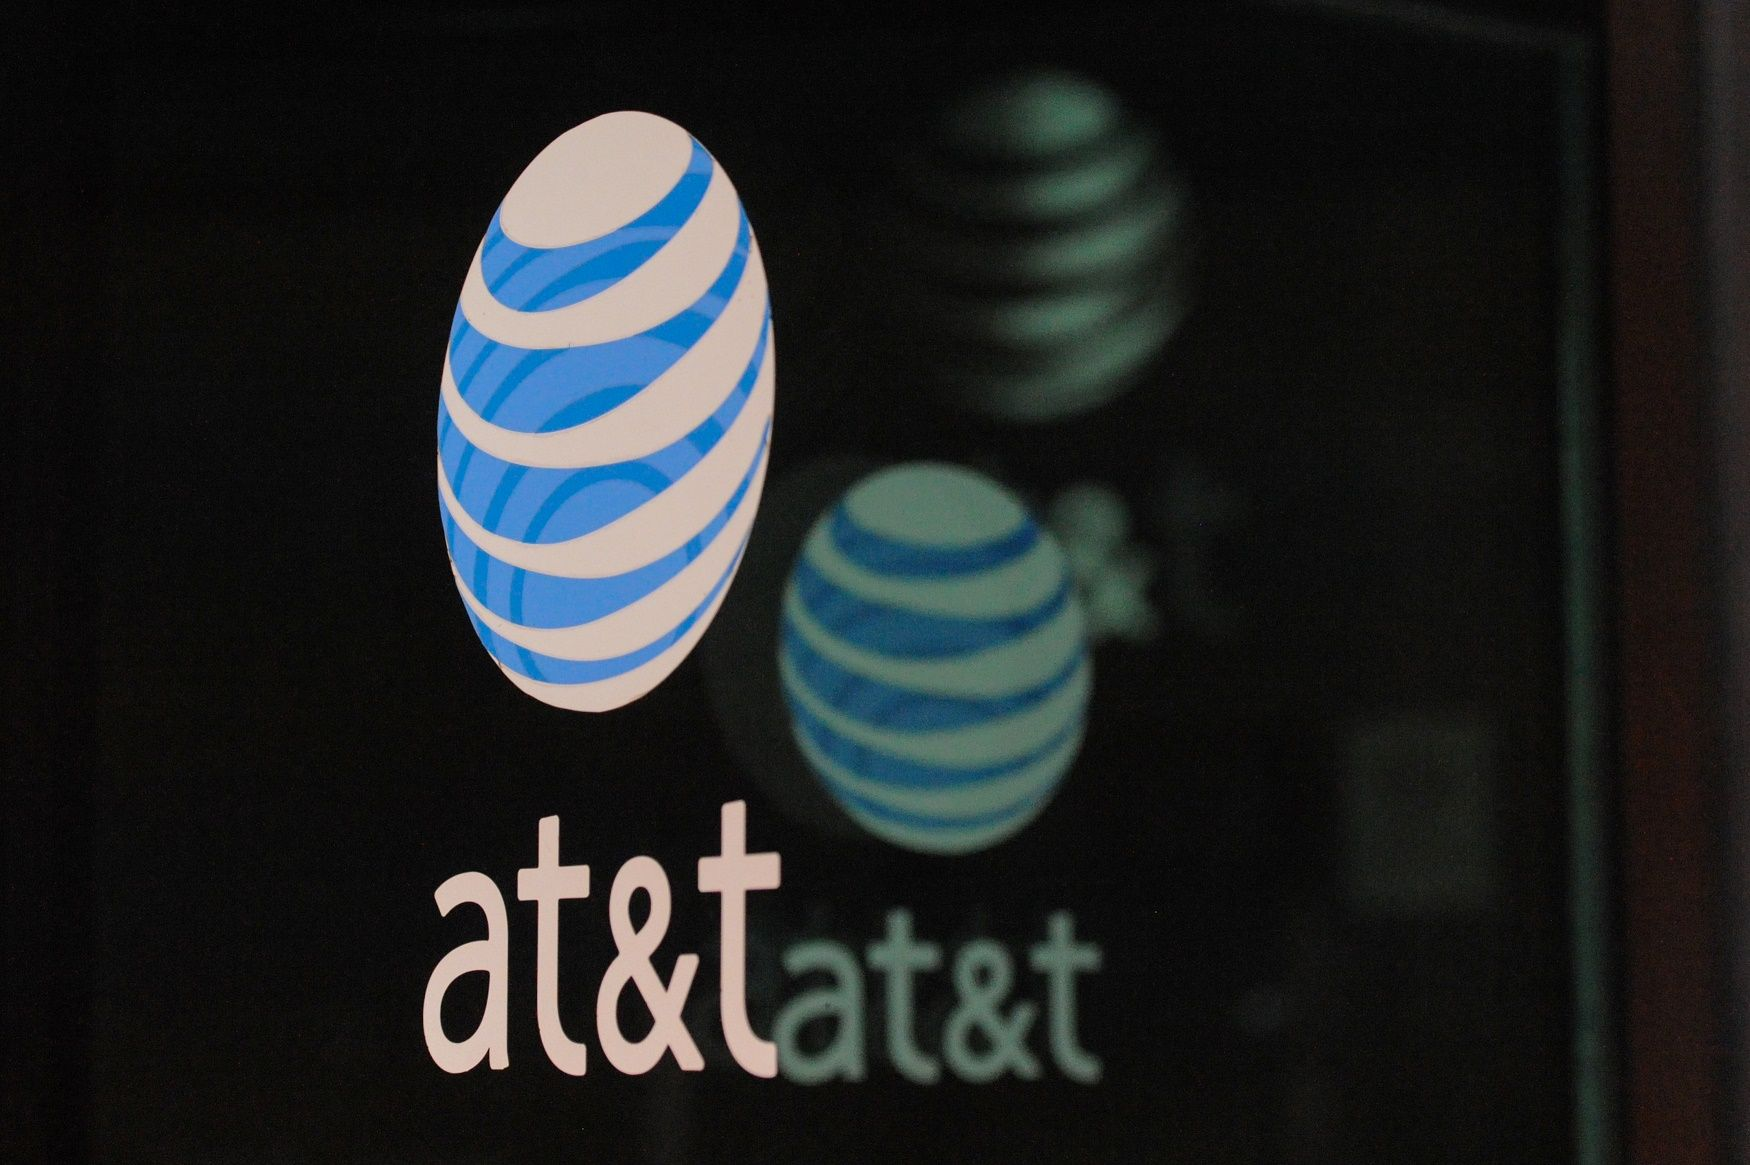 At&T hacking snowden fight for the future